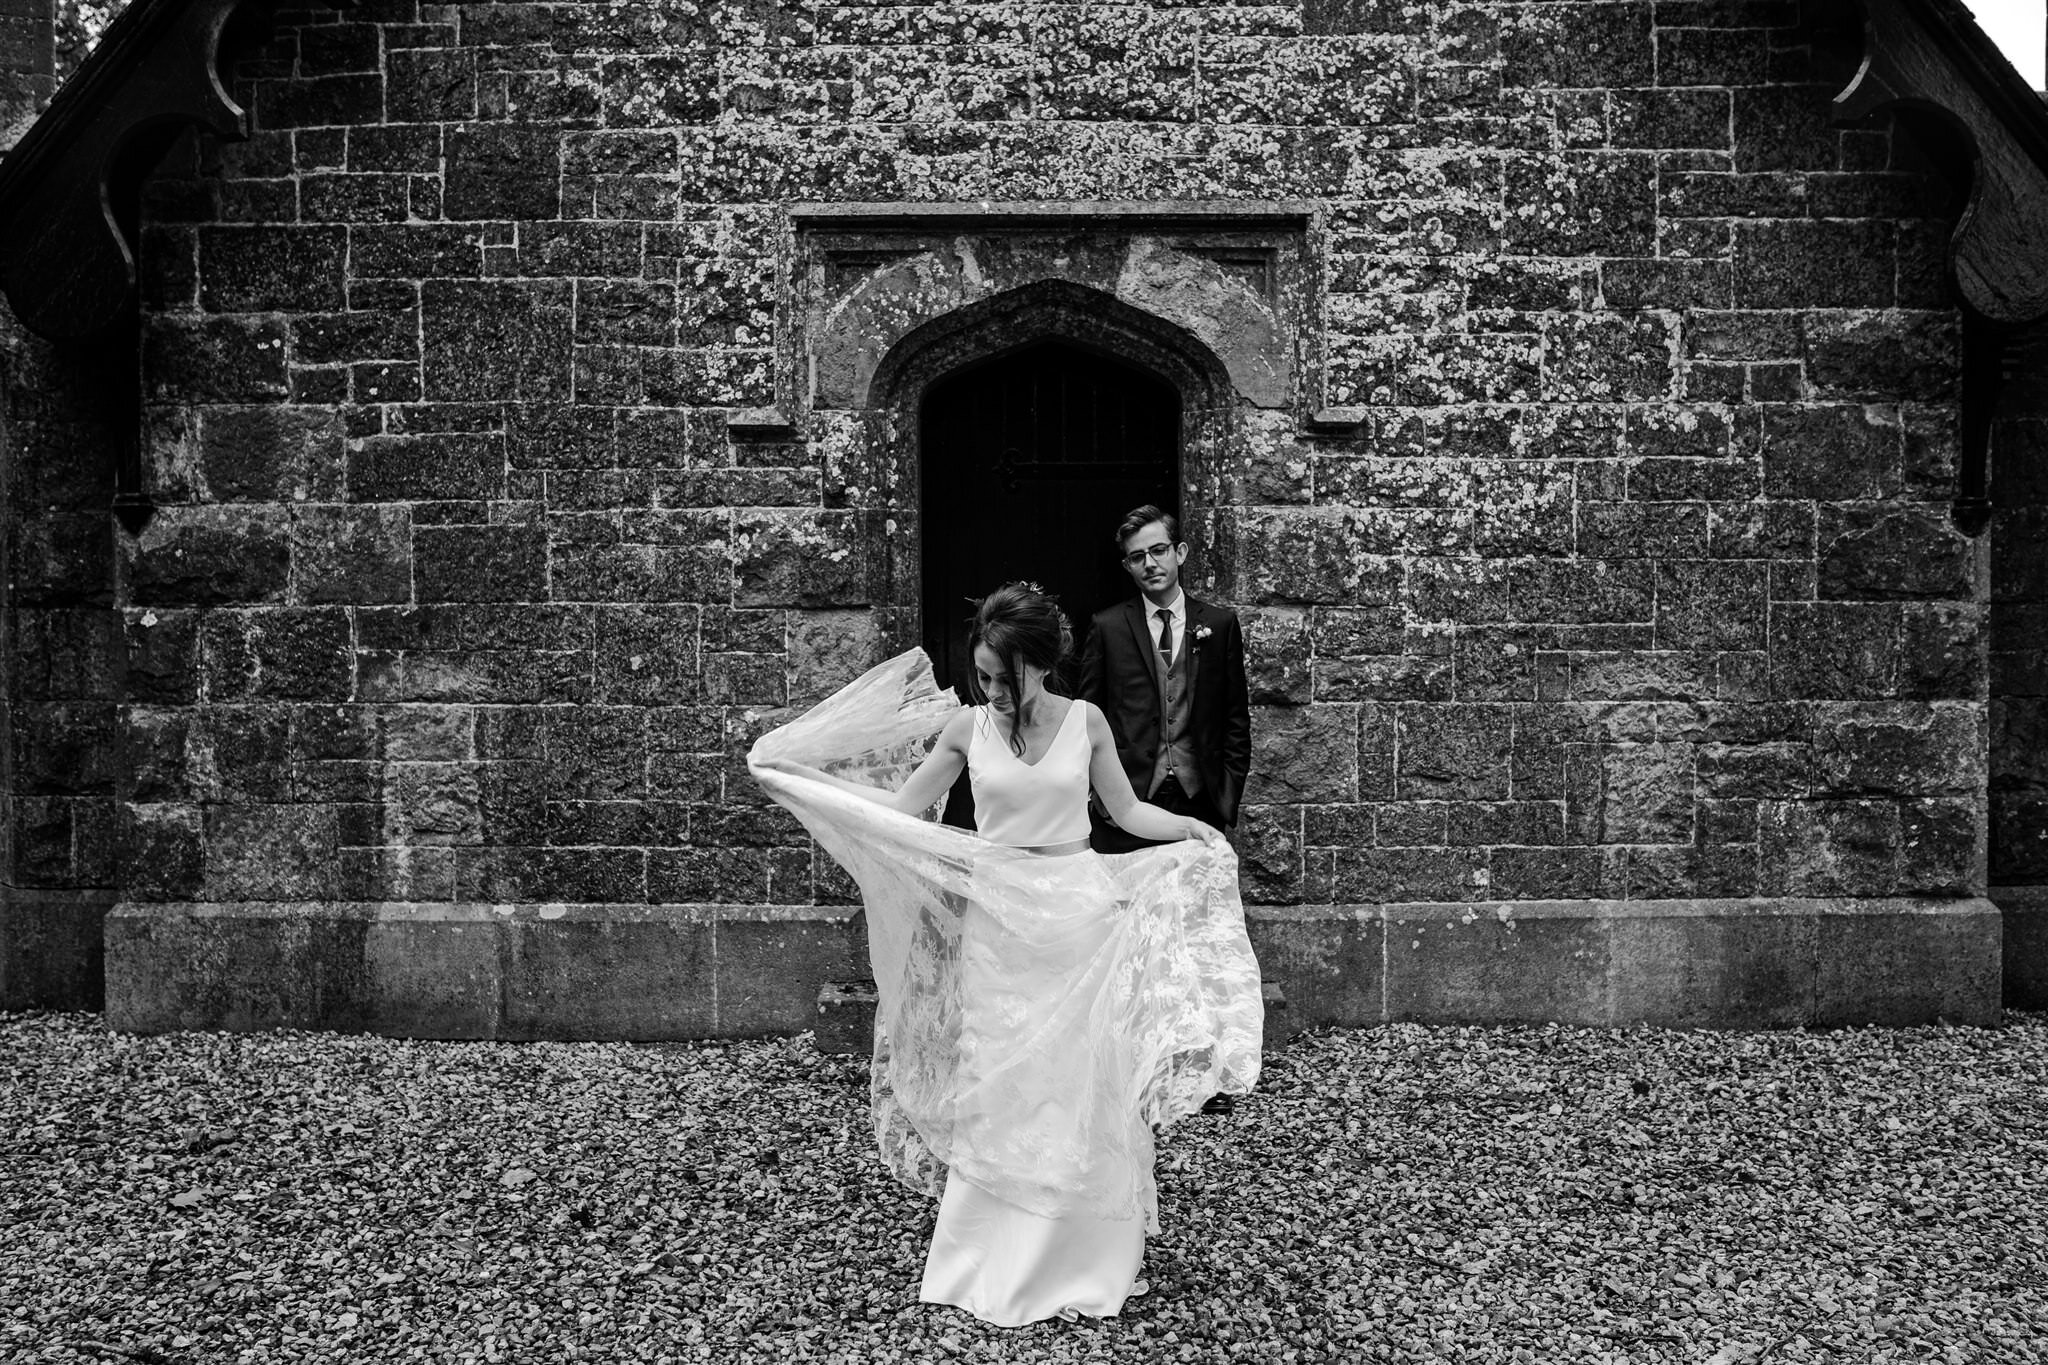 Creative wedding photography Charlie brear wedding dress crom castle